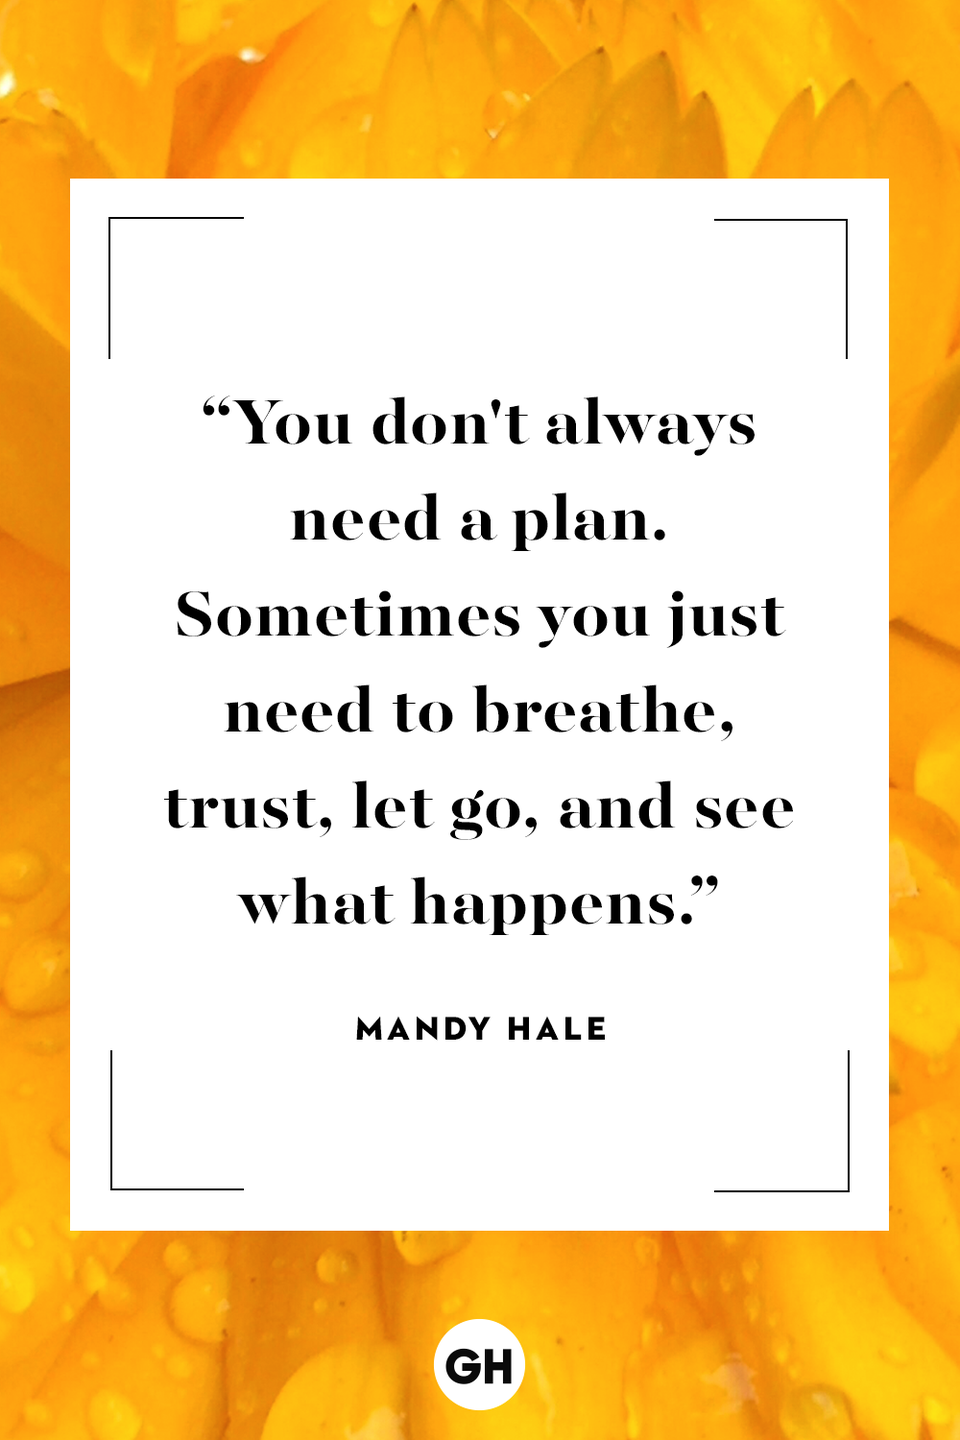 <p>You don't always need a plan. Sometimes you just need to breathe, trust, let go and see what happens.</p>